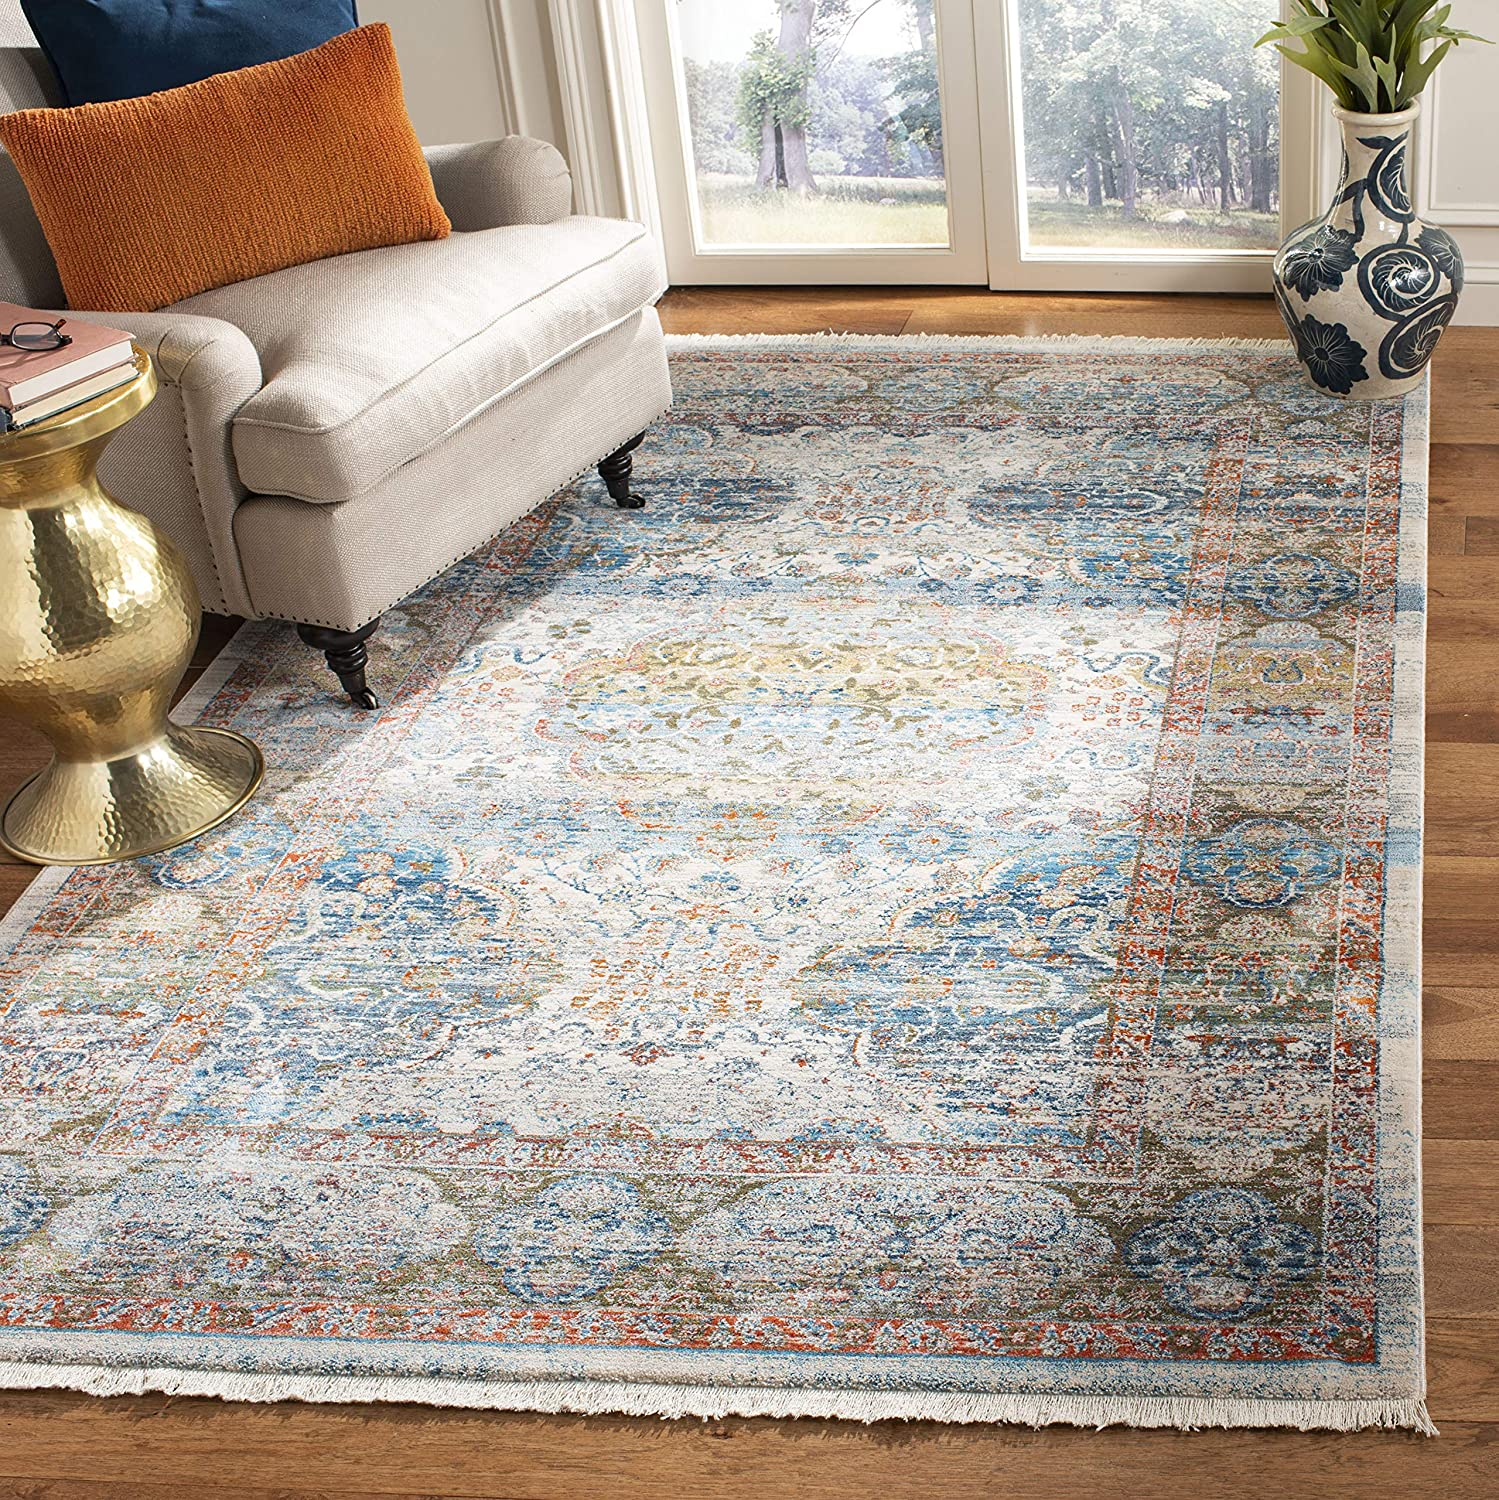 Safavieh Vintage Persian Collection VTP483B Traditional Oriental Distressed Area Rug, 4' x 6', Beige / Blue